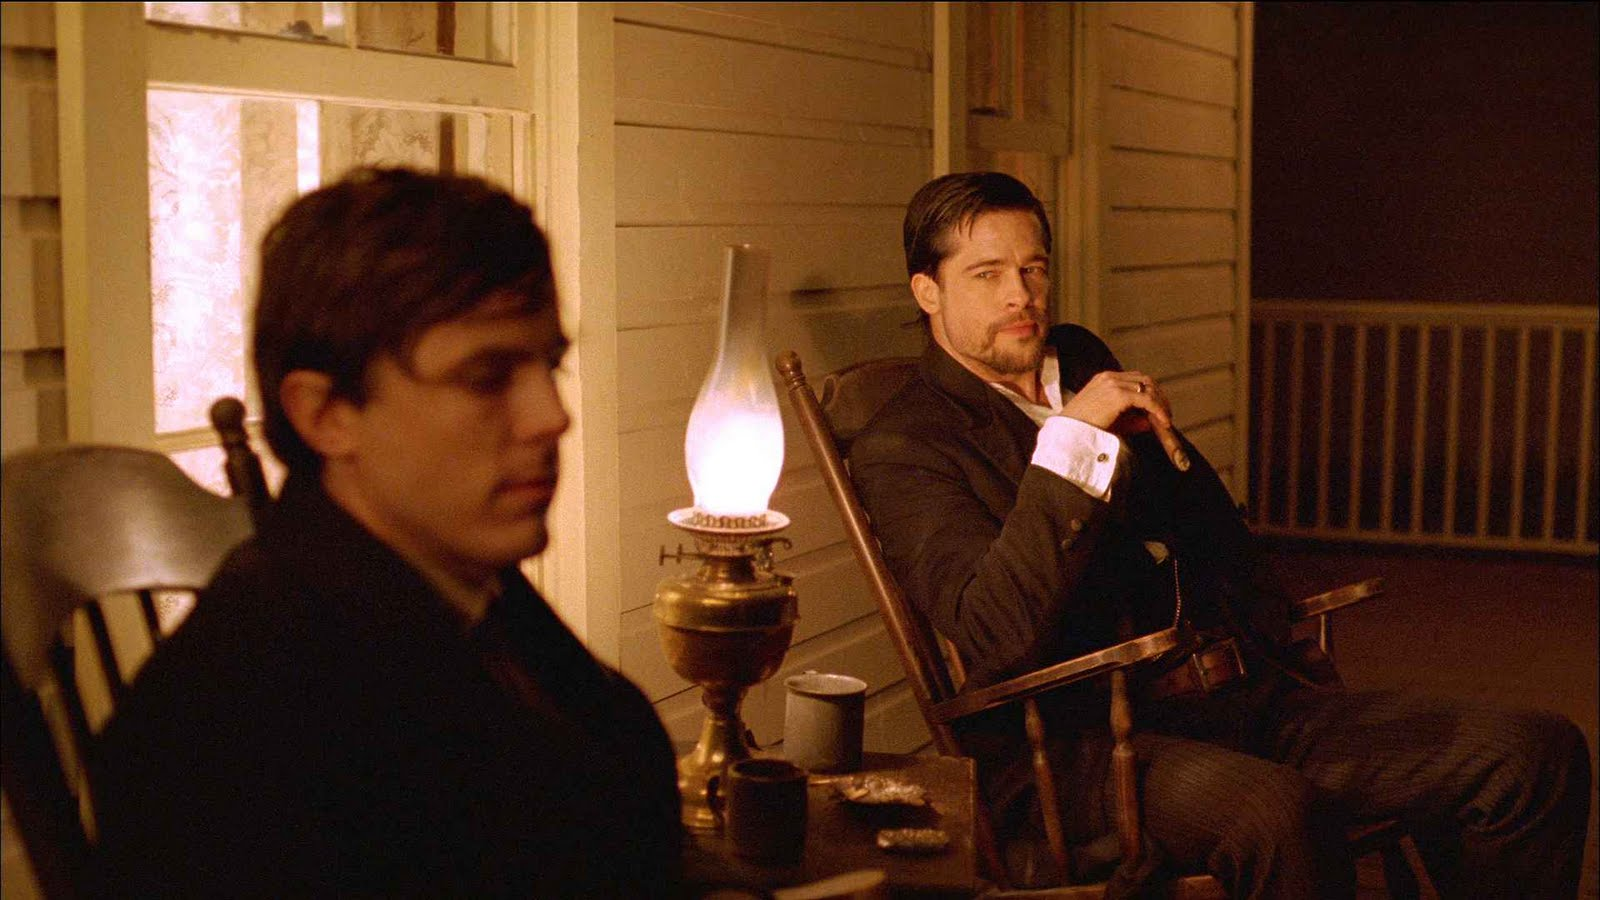 http://1.bp.blogspot.com/-UzjZ9zGsK6w/TrxI-gFgqrI/AAAAAAAAAR0/aASRB3YqLjE/s1600/2007_the_assassination_of_jesse_james_by_the_coward_robert_ford_007.jpg